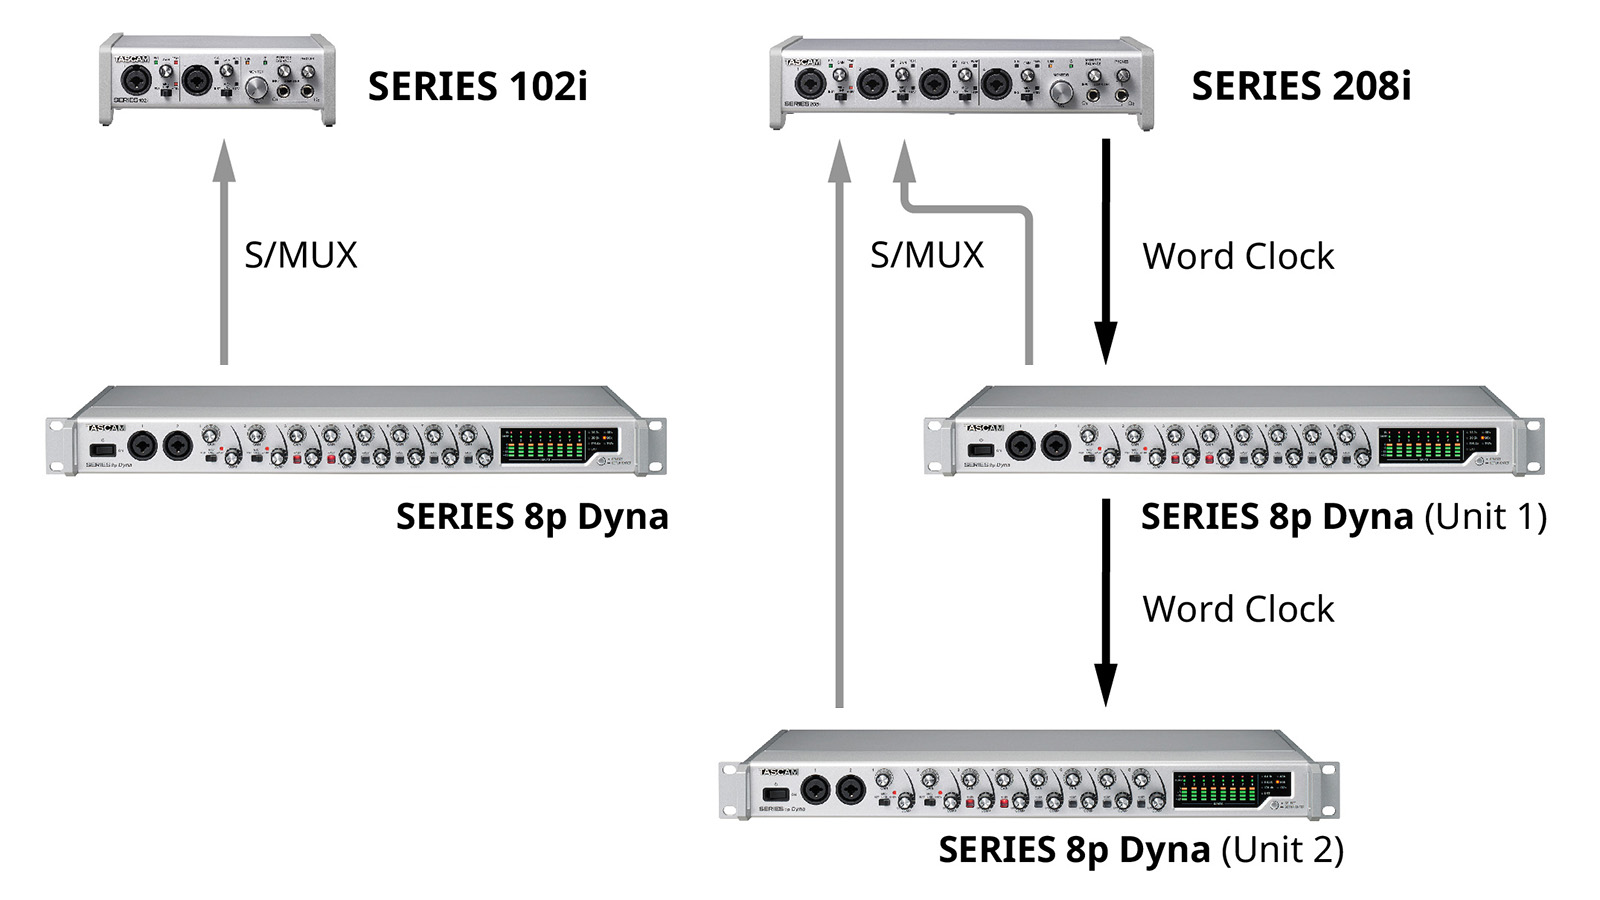 SERIES 8p Dyna